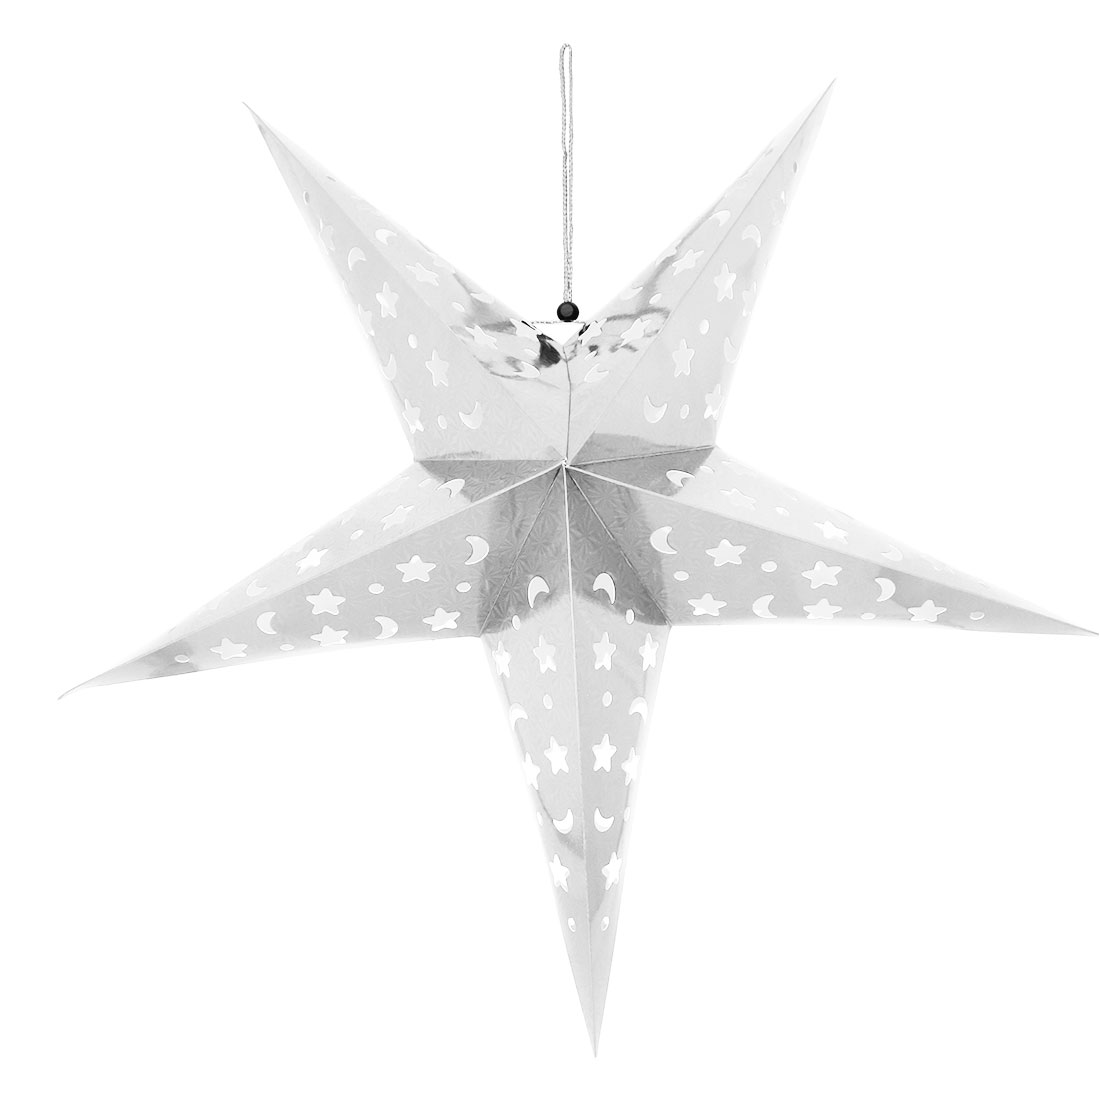 Home Party Paper Star Shaped Decor Christmas Tree Hanging Ornament Silver Tone - image 4 of 4